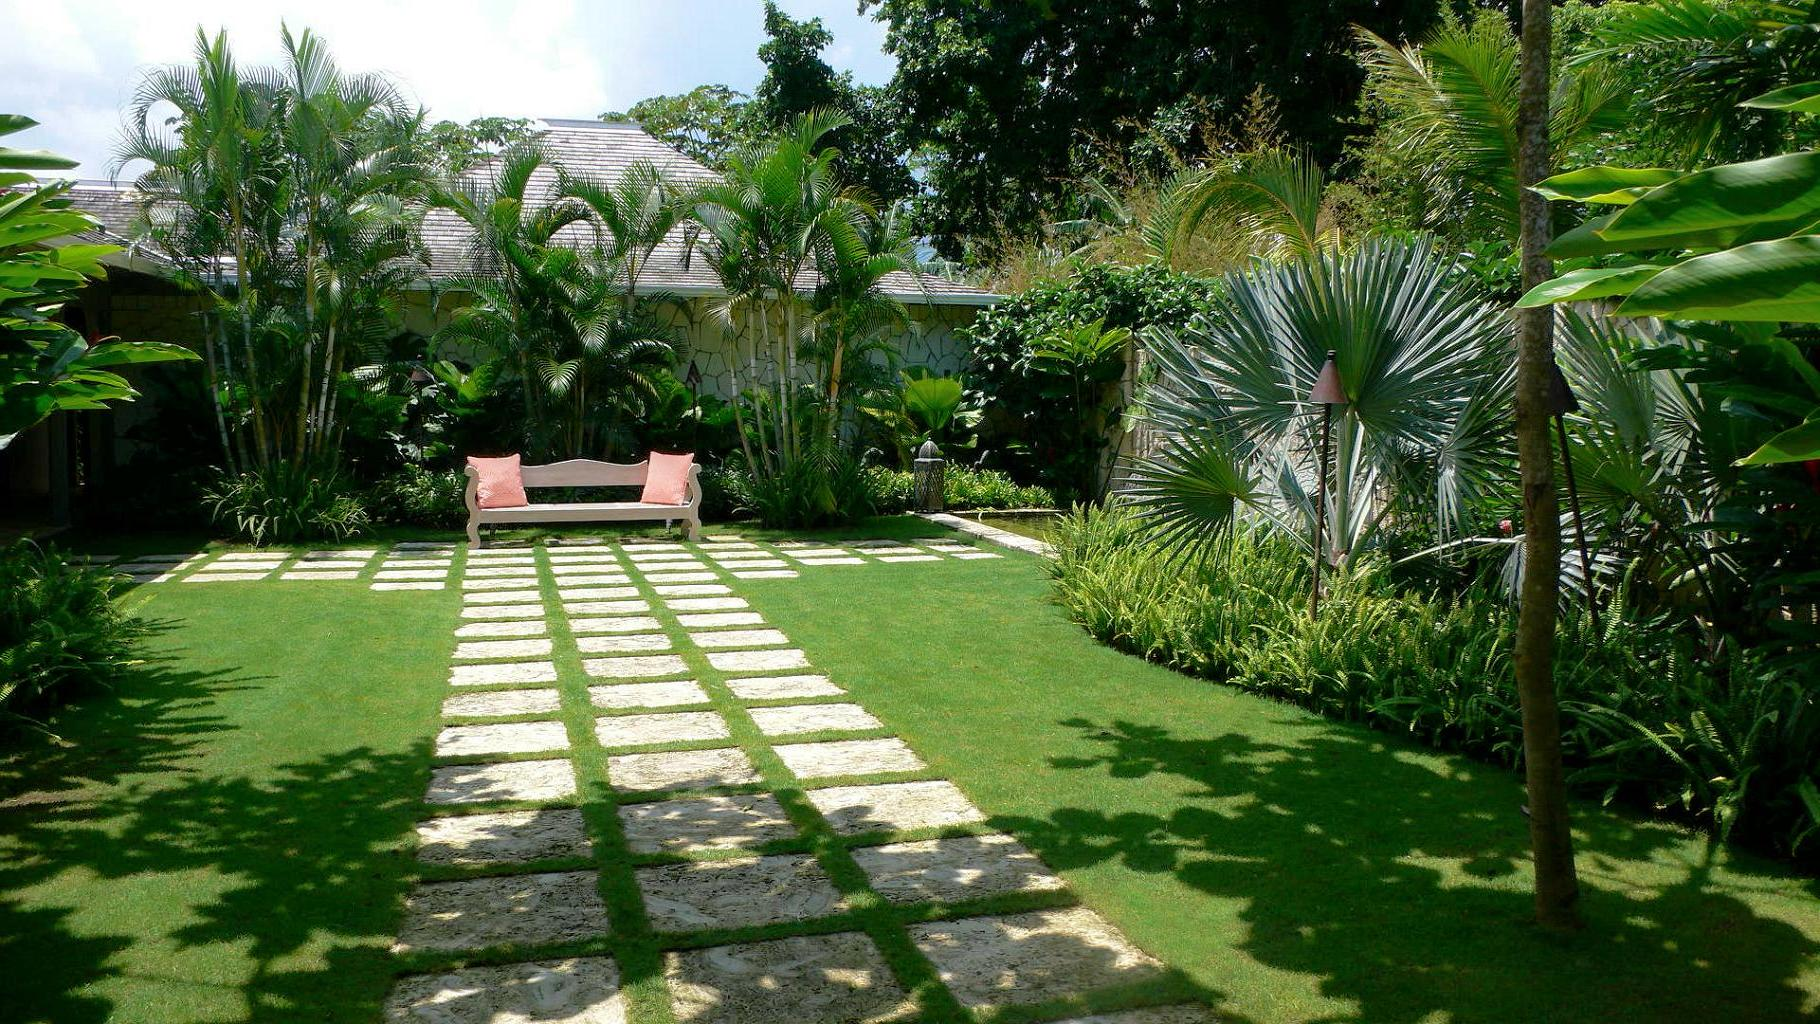 Tropical garden design landscaping in brisbane for Latest landscape design